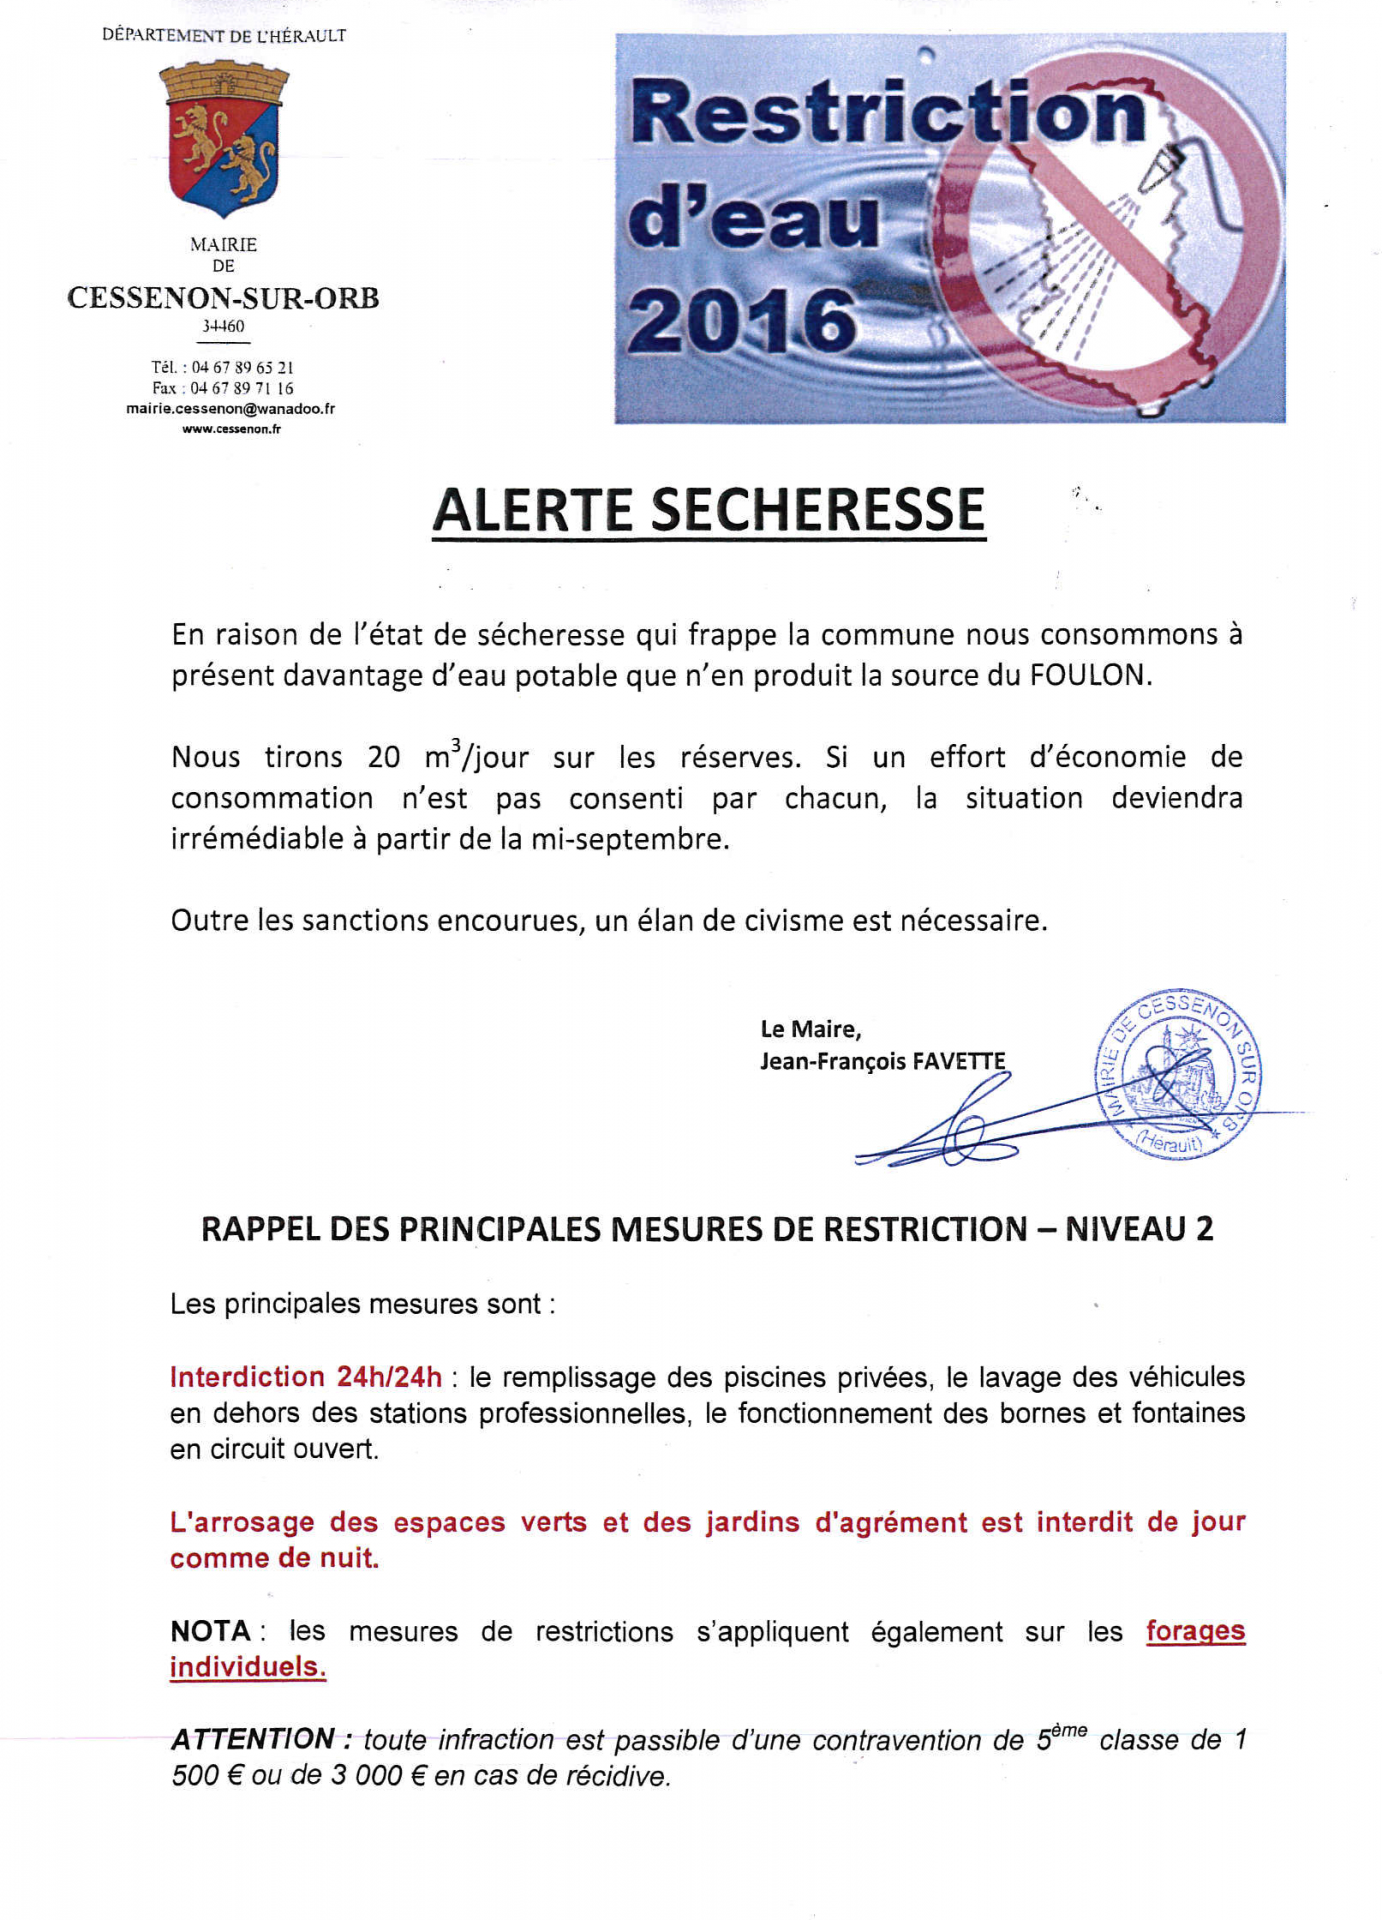 2016 09 06 restriction secheresse niveau 2